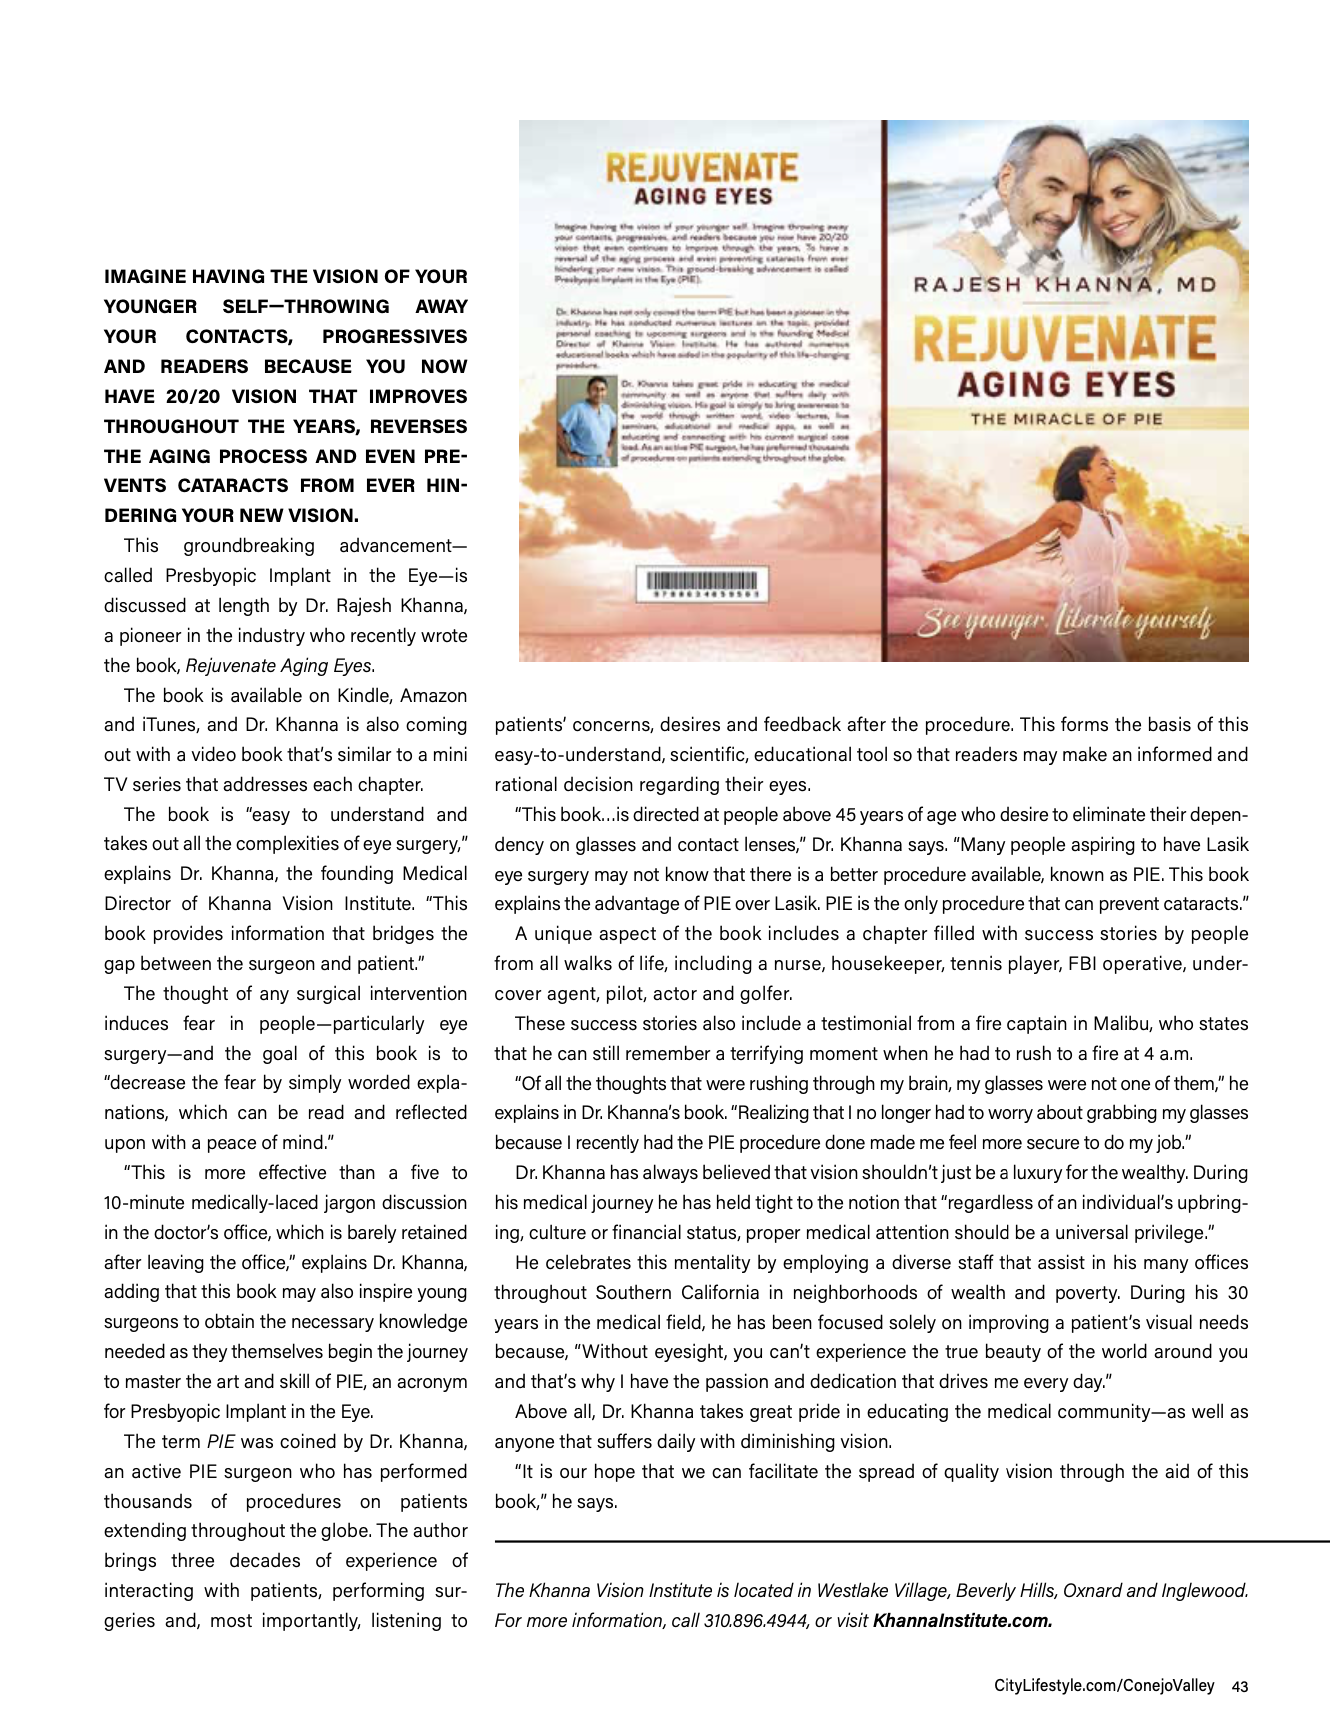 Dr Khanna Pie Surgery article in August issue of Conejo Valley Lifestyle